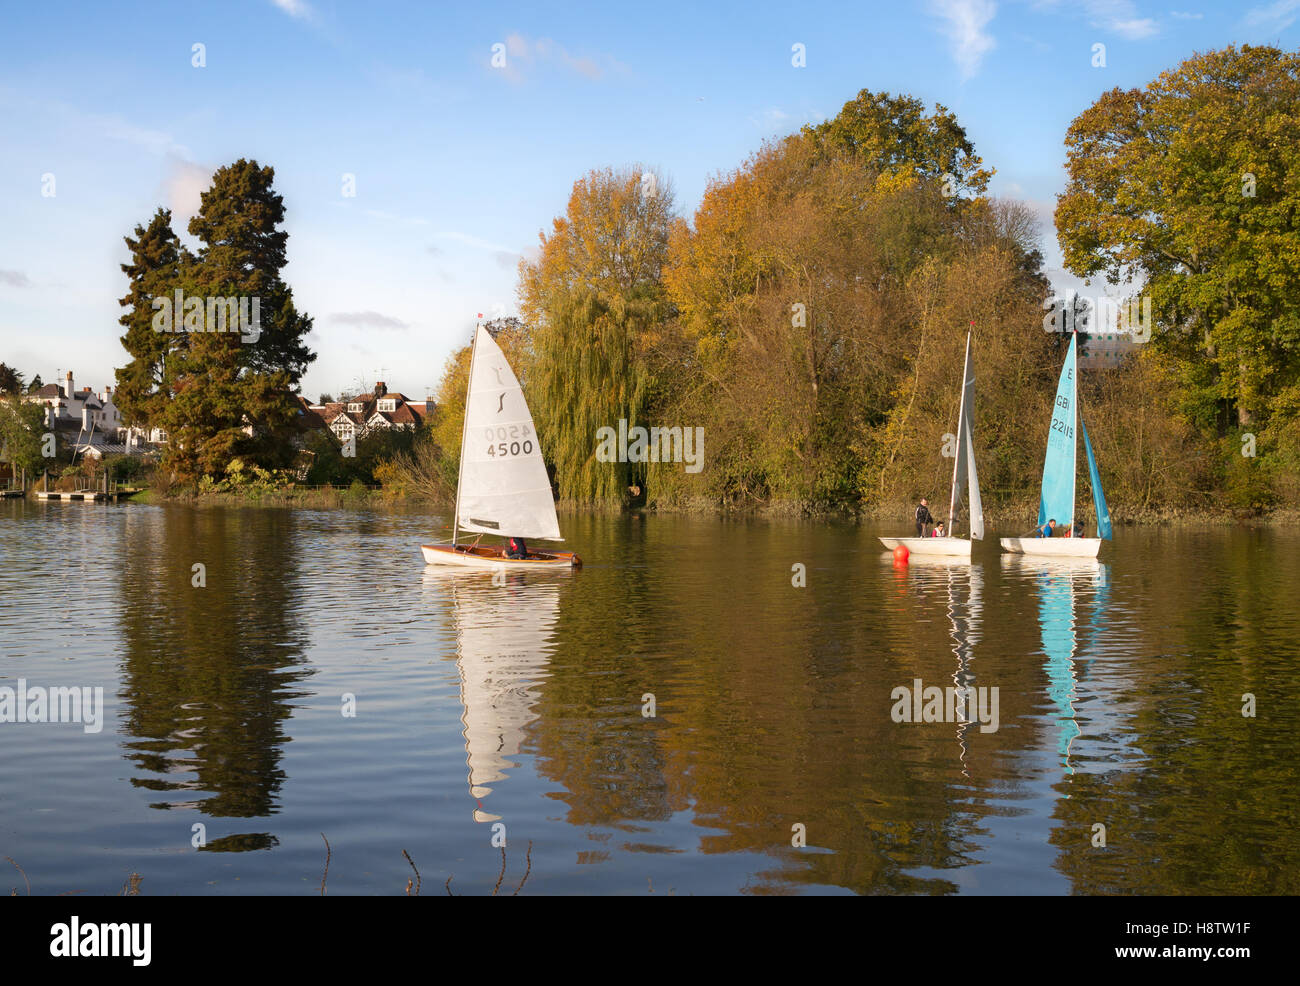 Sailing dinghies from Twickenham Yacht Club, racing on the river Thames, London, England, UK - Stock Image